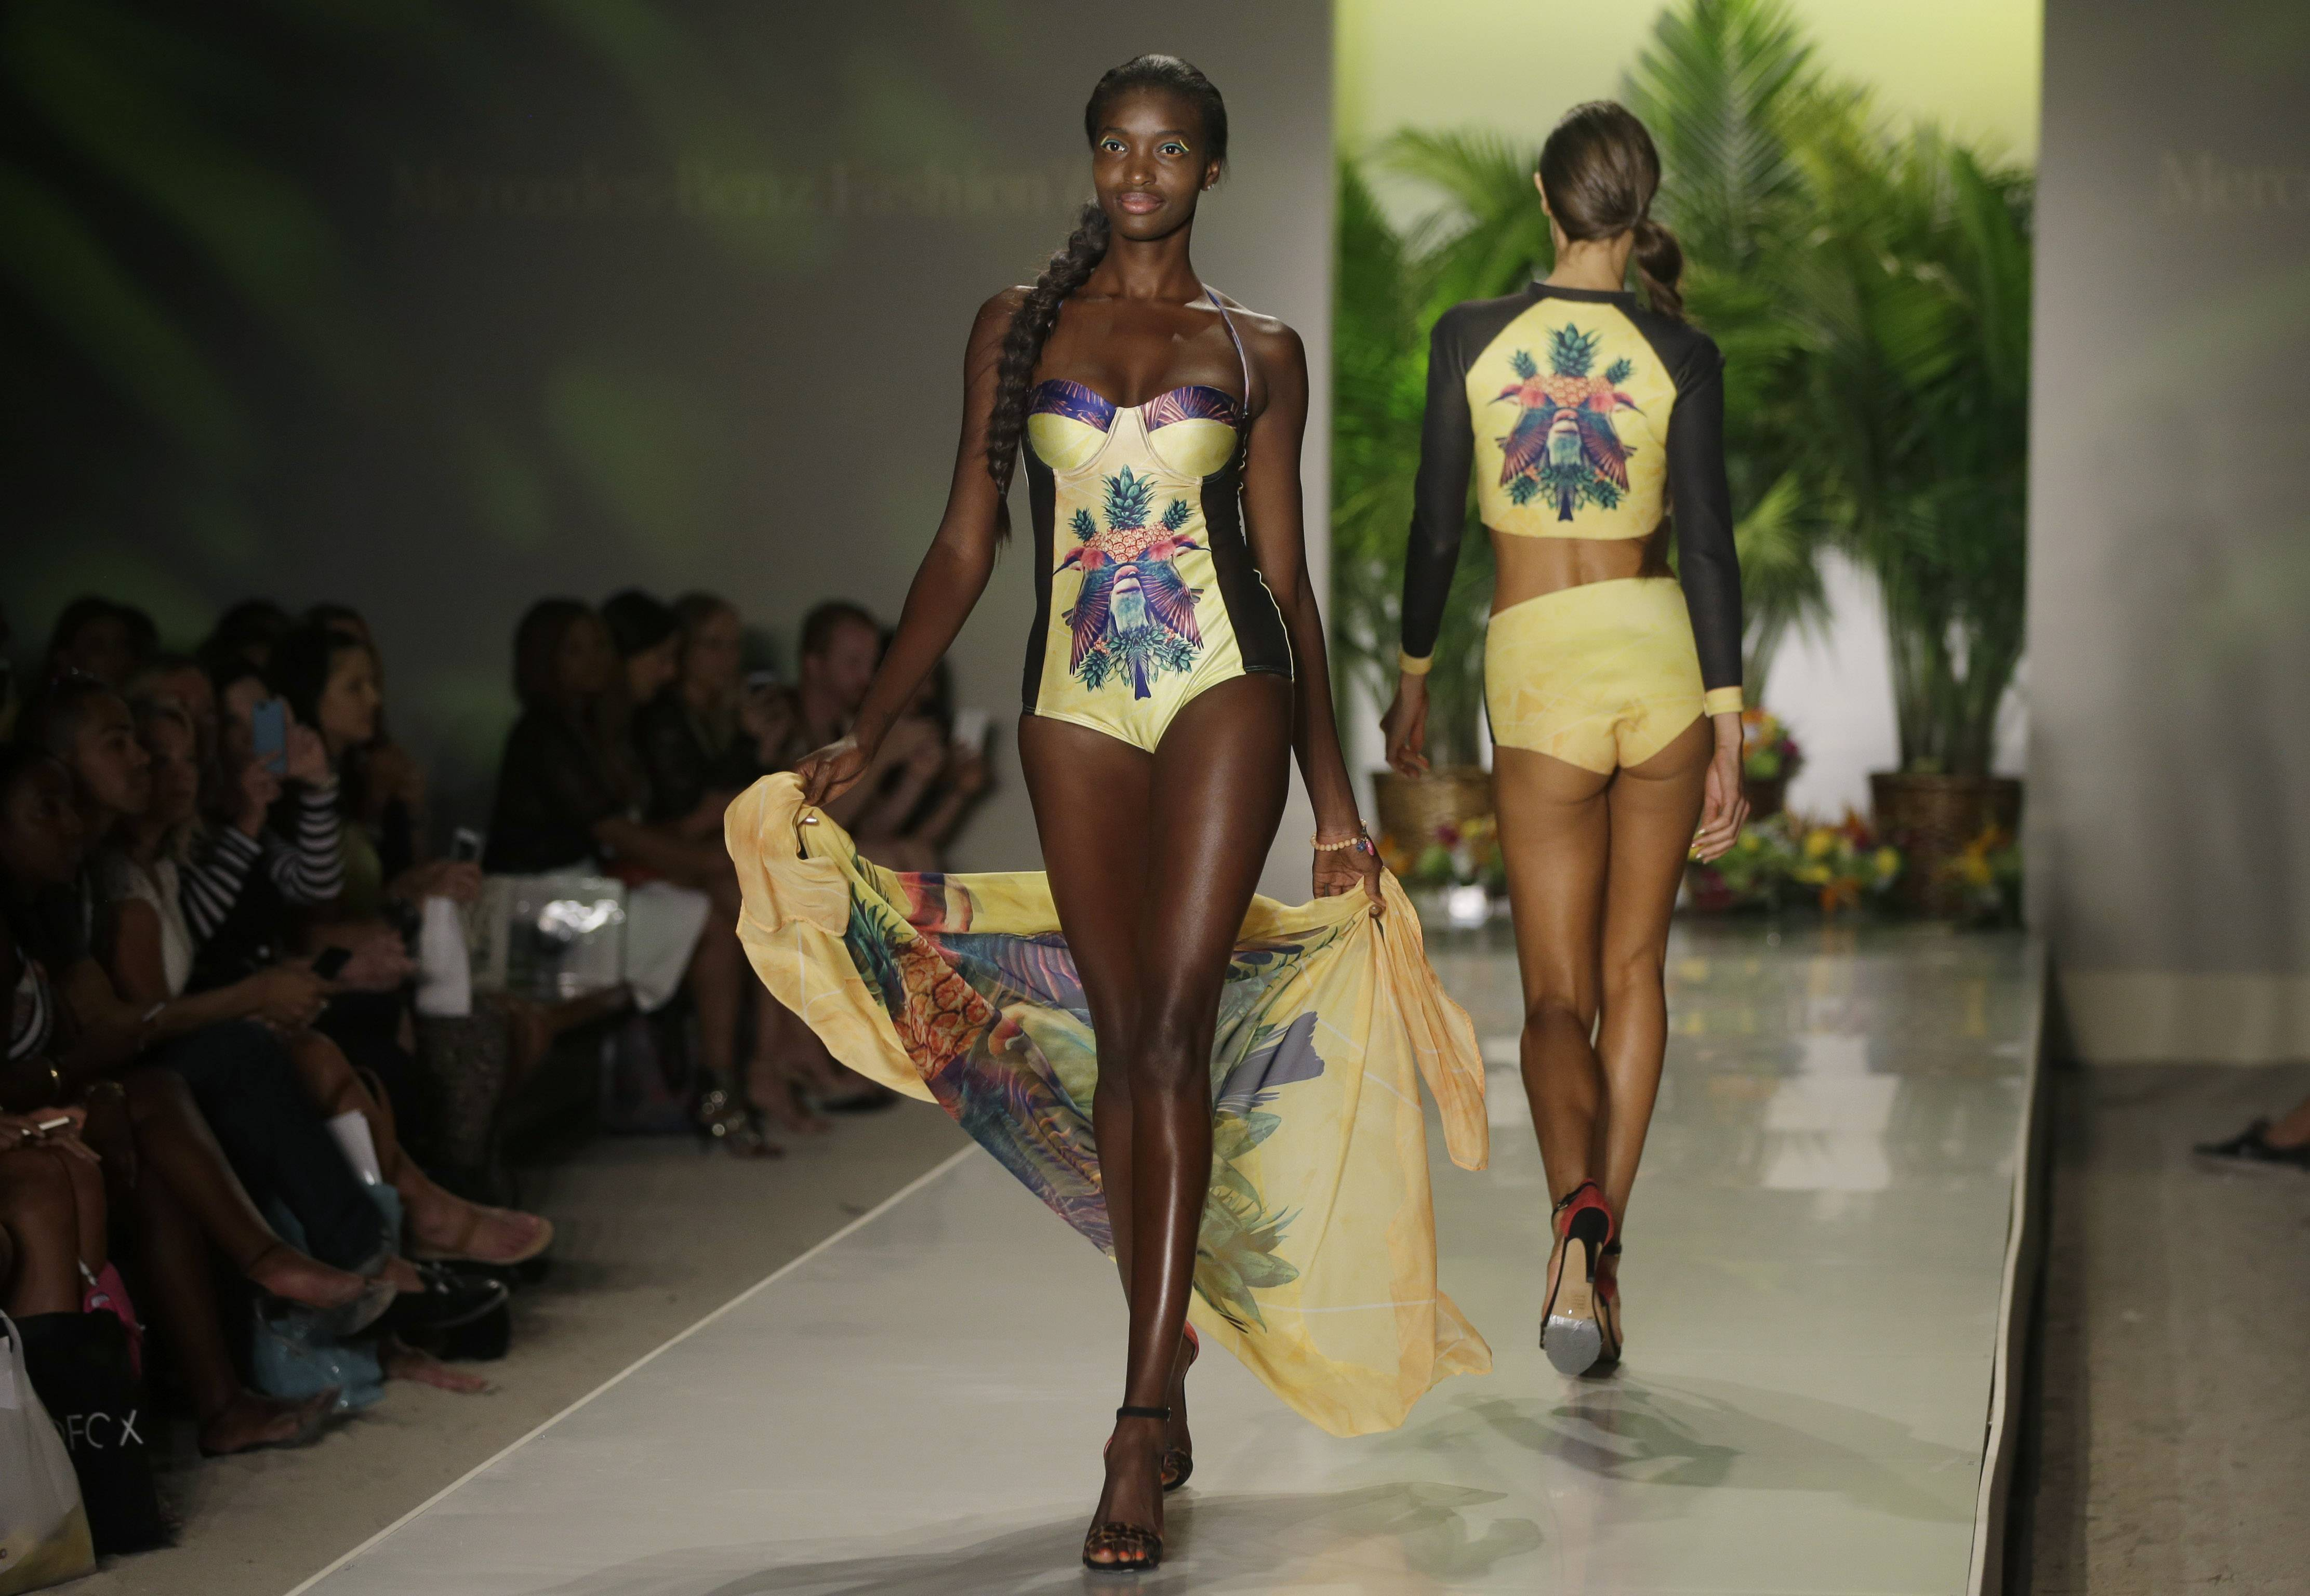 Models show off swimwear designed by We Are Handsome during the Mercedes-Benz Fashion Week Swim show Friday in Miami Beach, Fla.